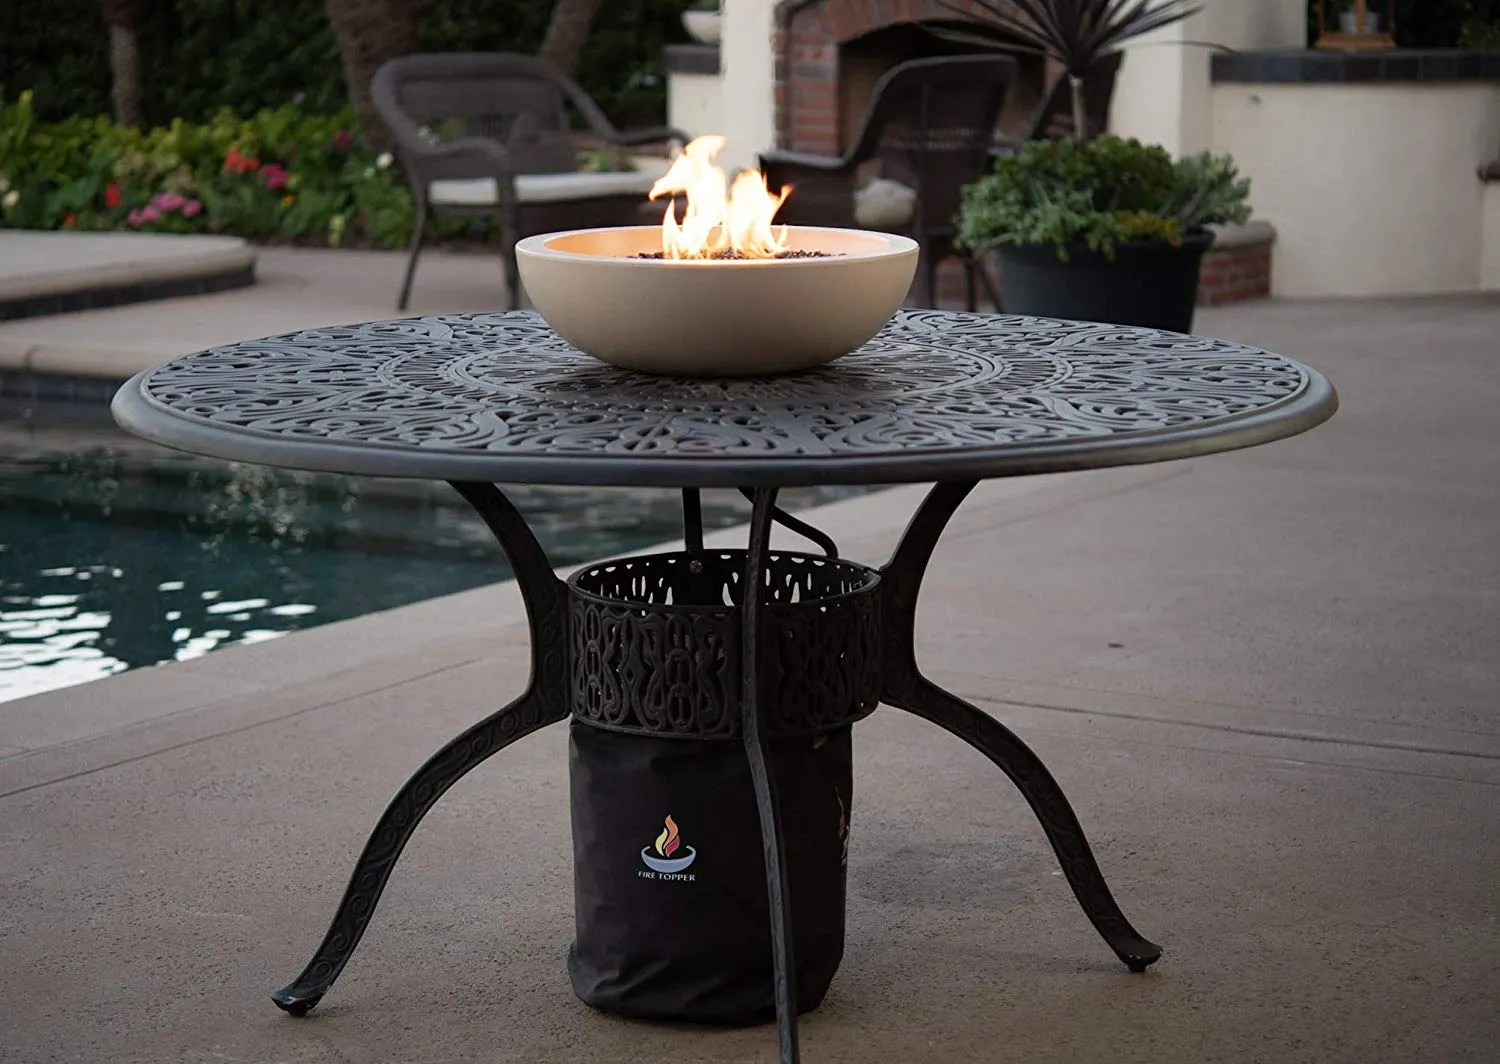 35 modern fire pit ideas that are lit